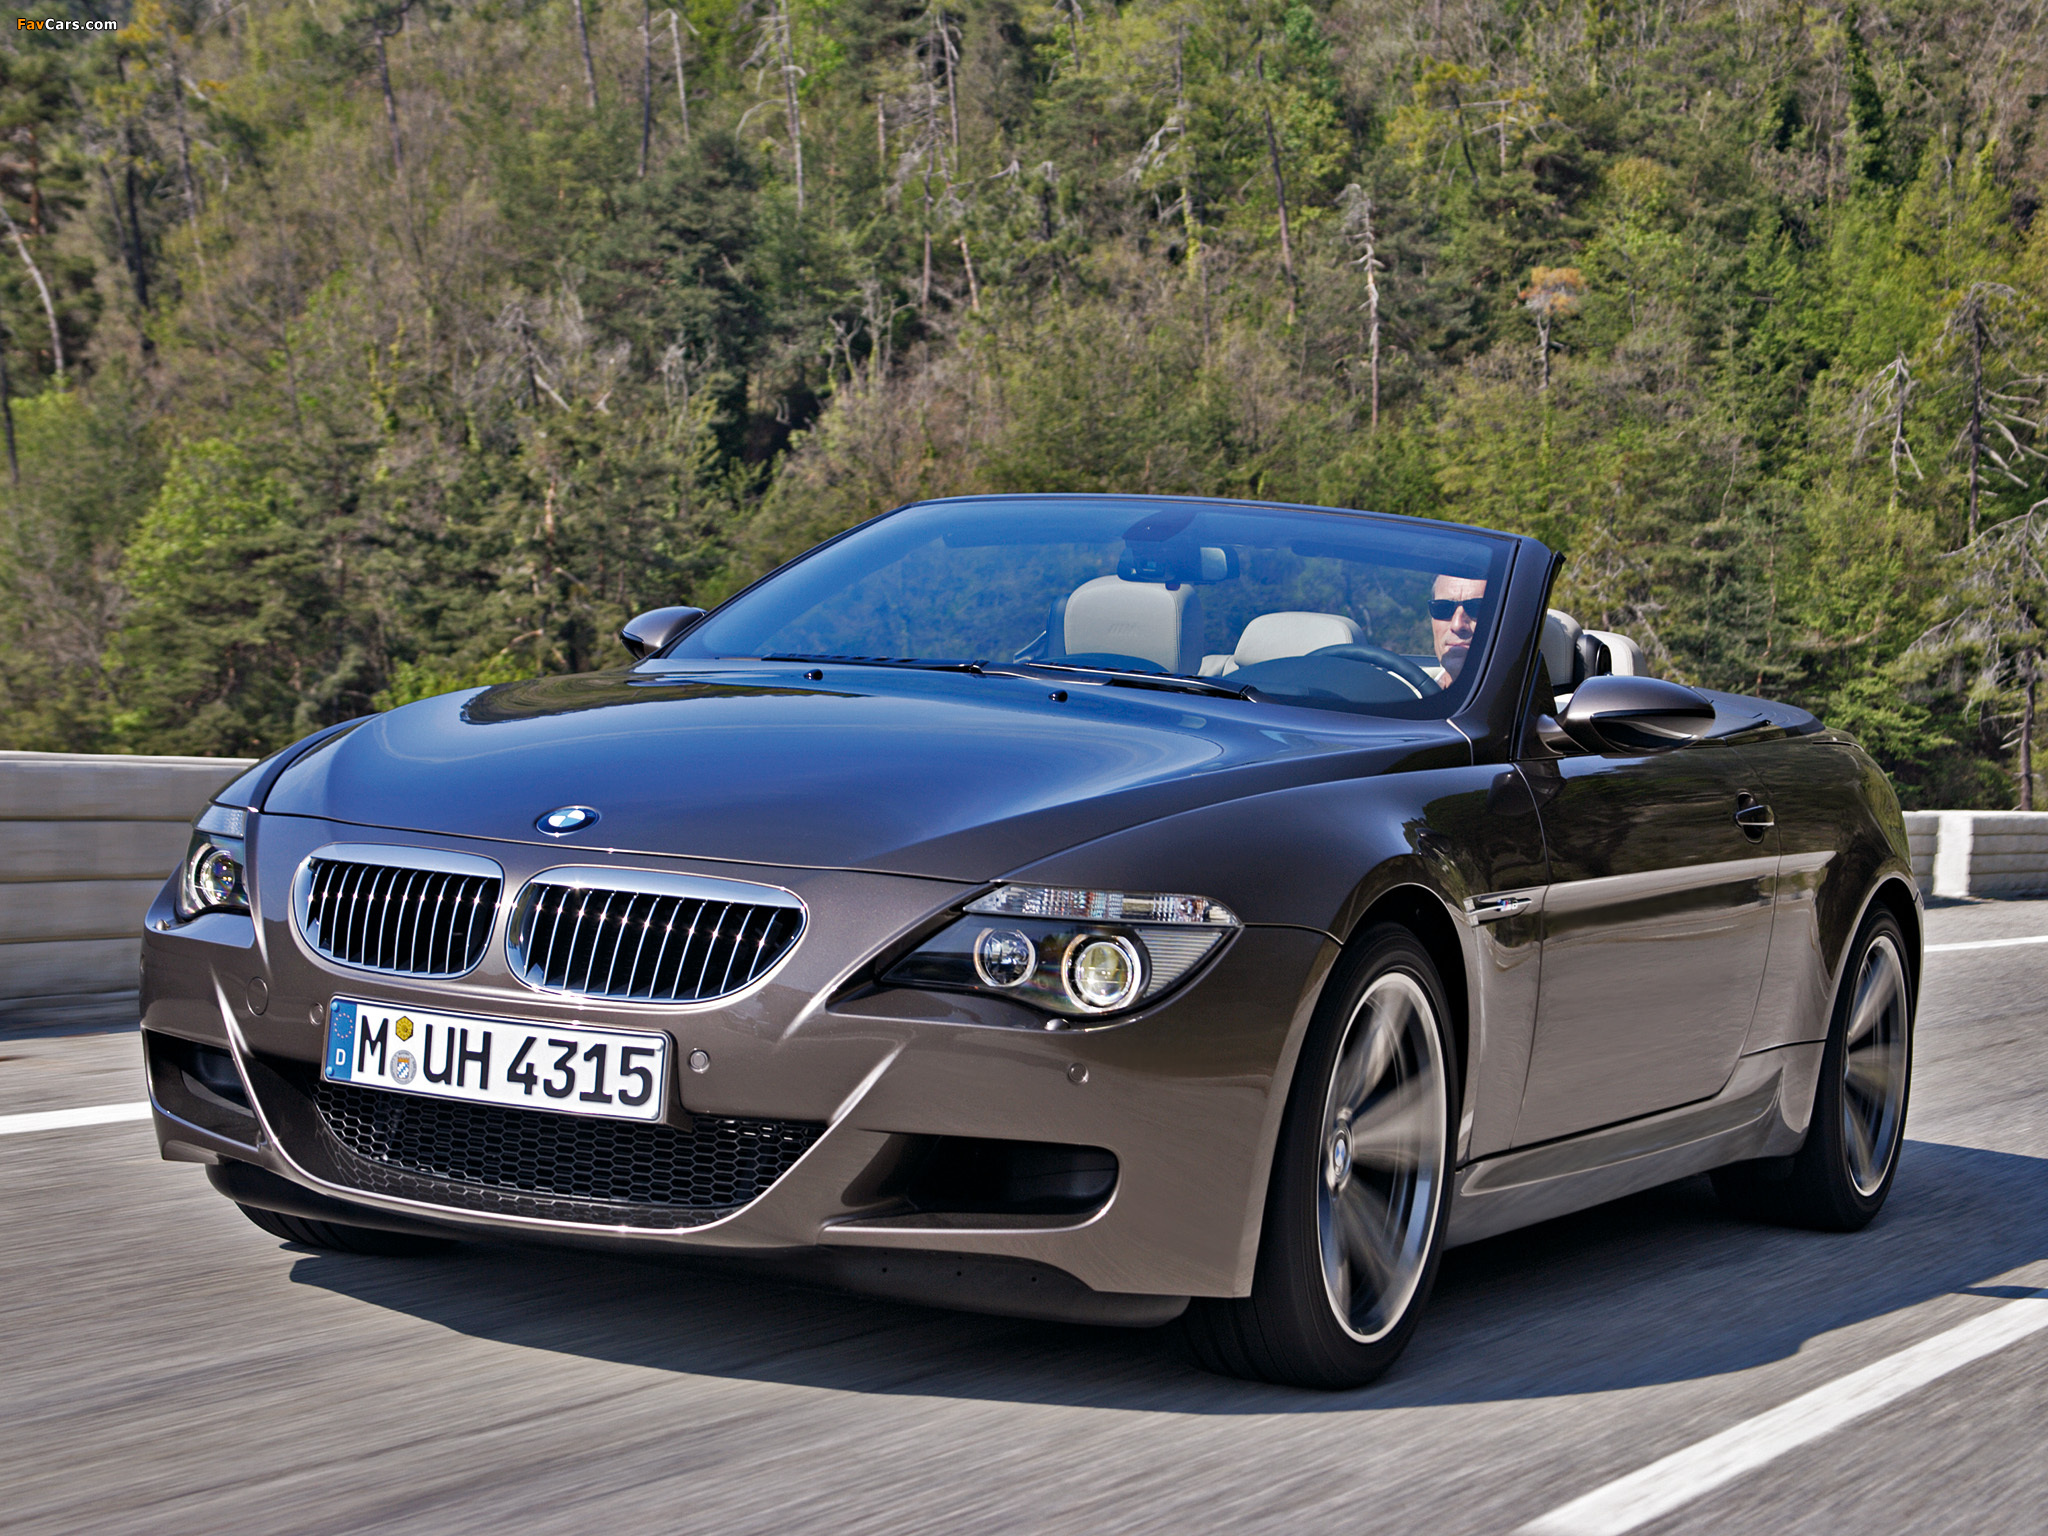 Bmw Classic Cars For Sale In Malaysia